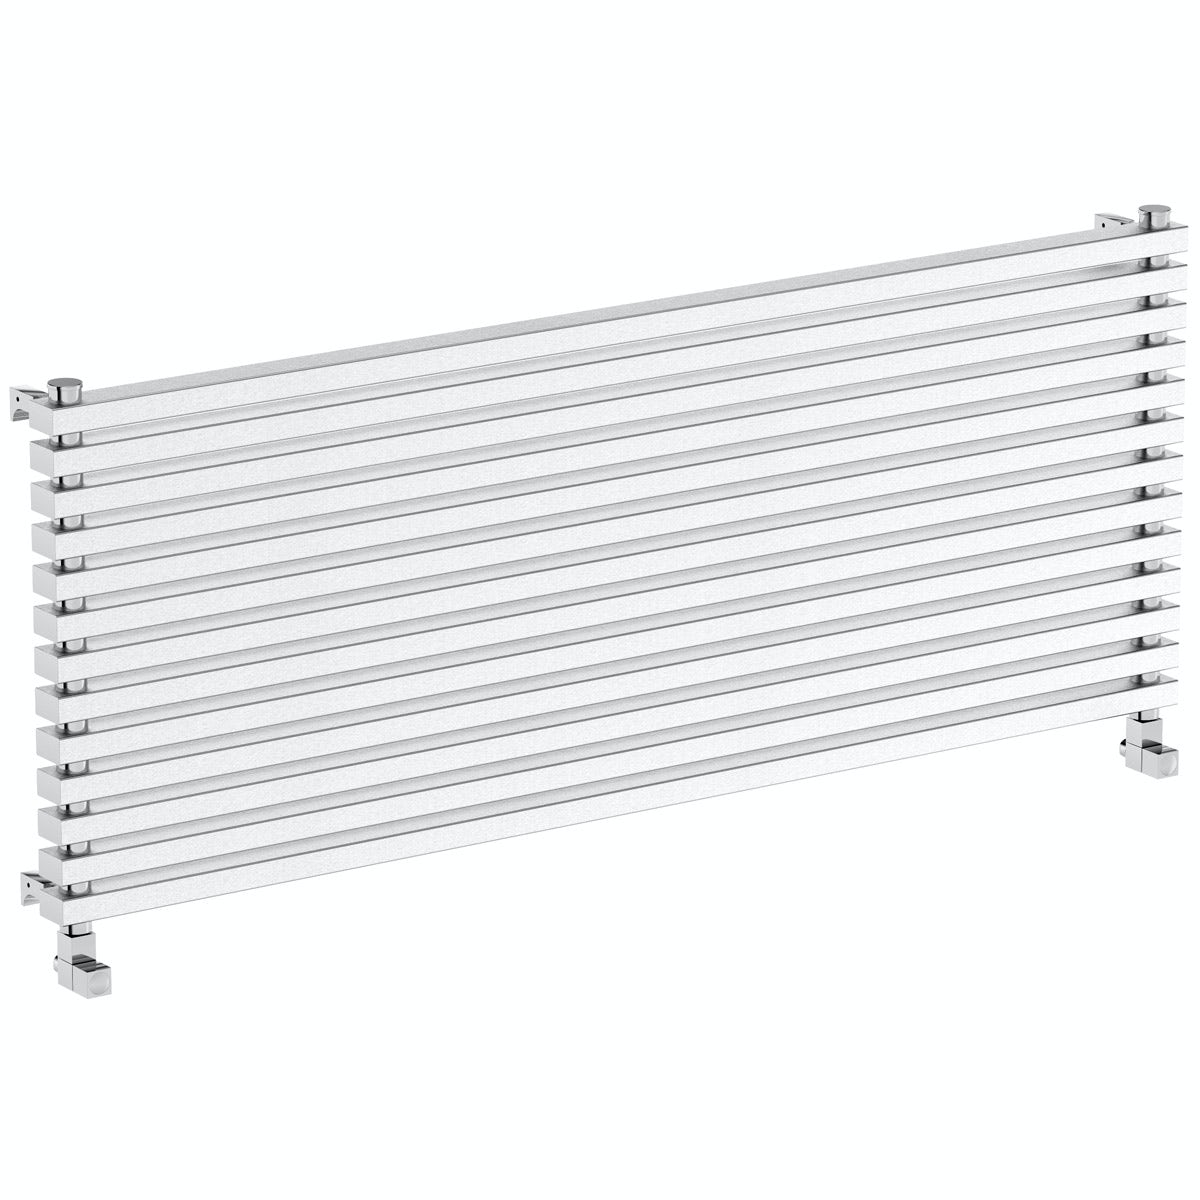 Mode Cadence horizontal radiator 600 x 1500